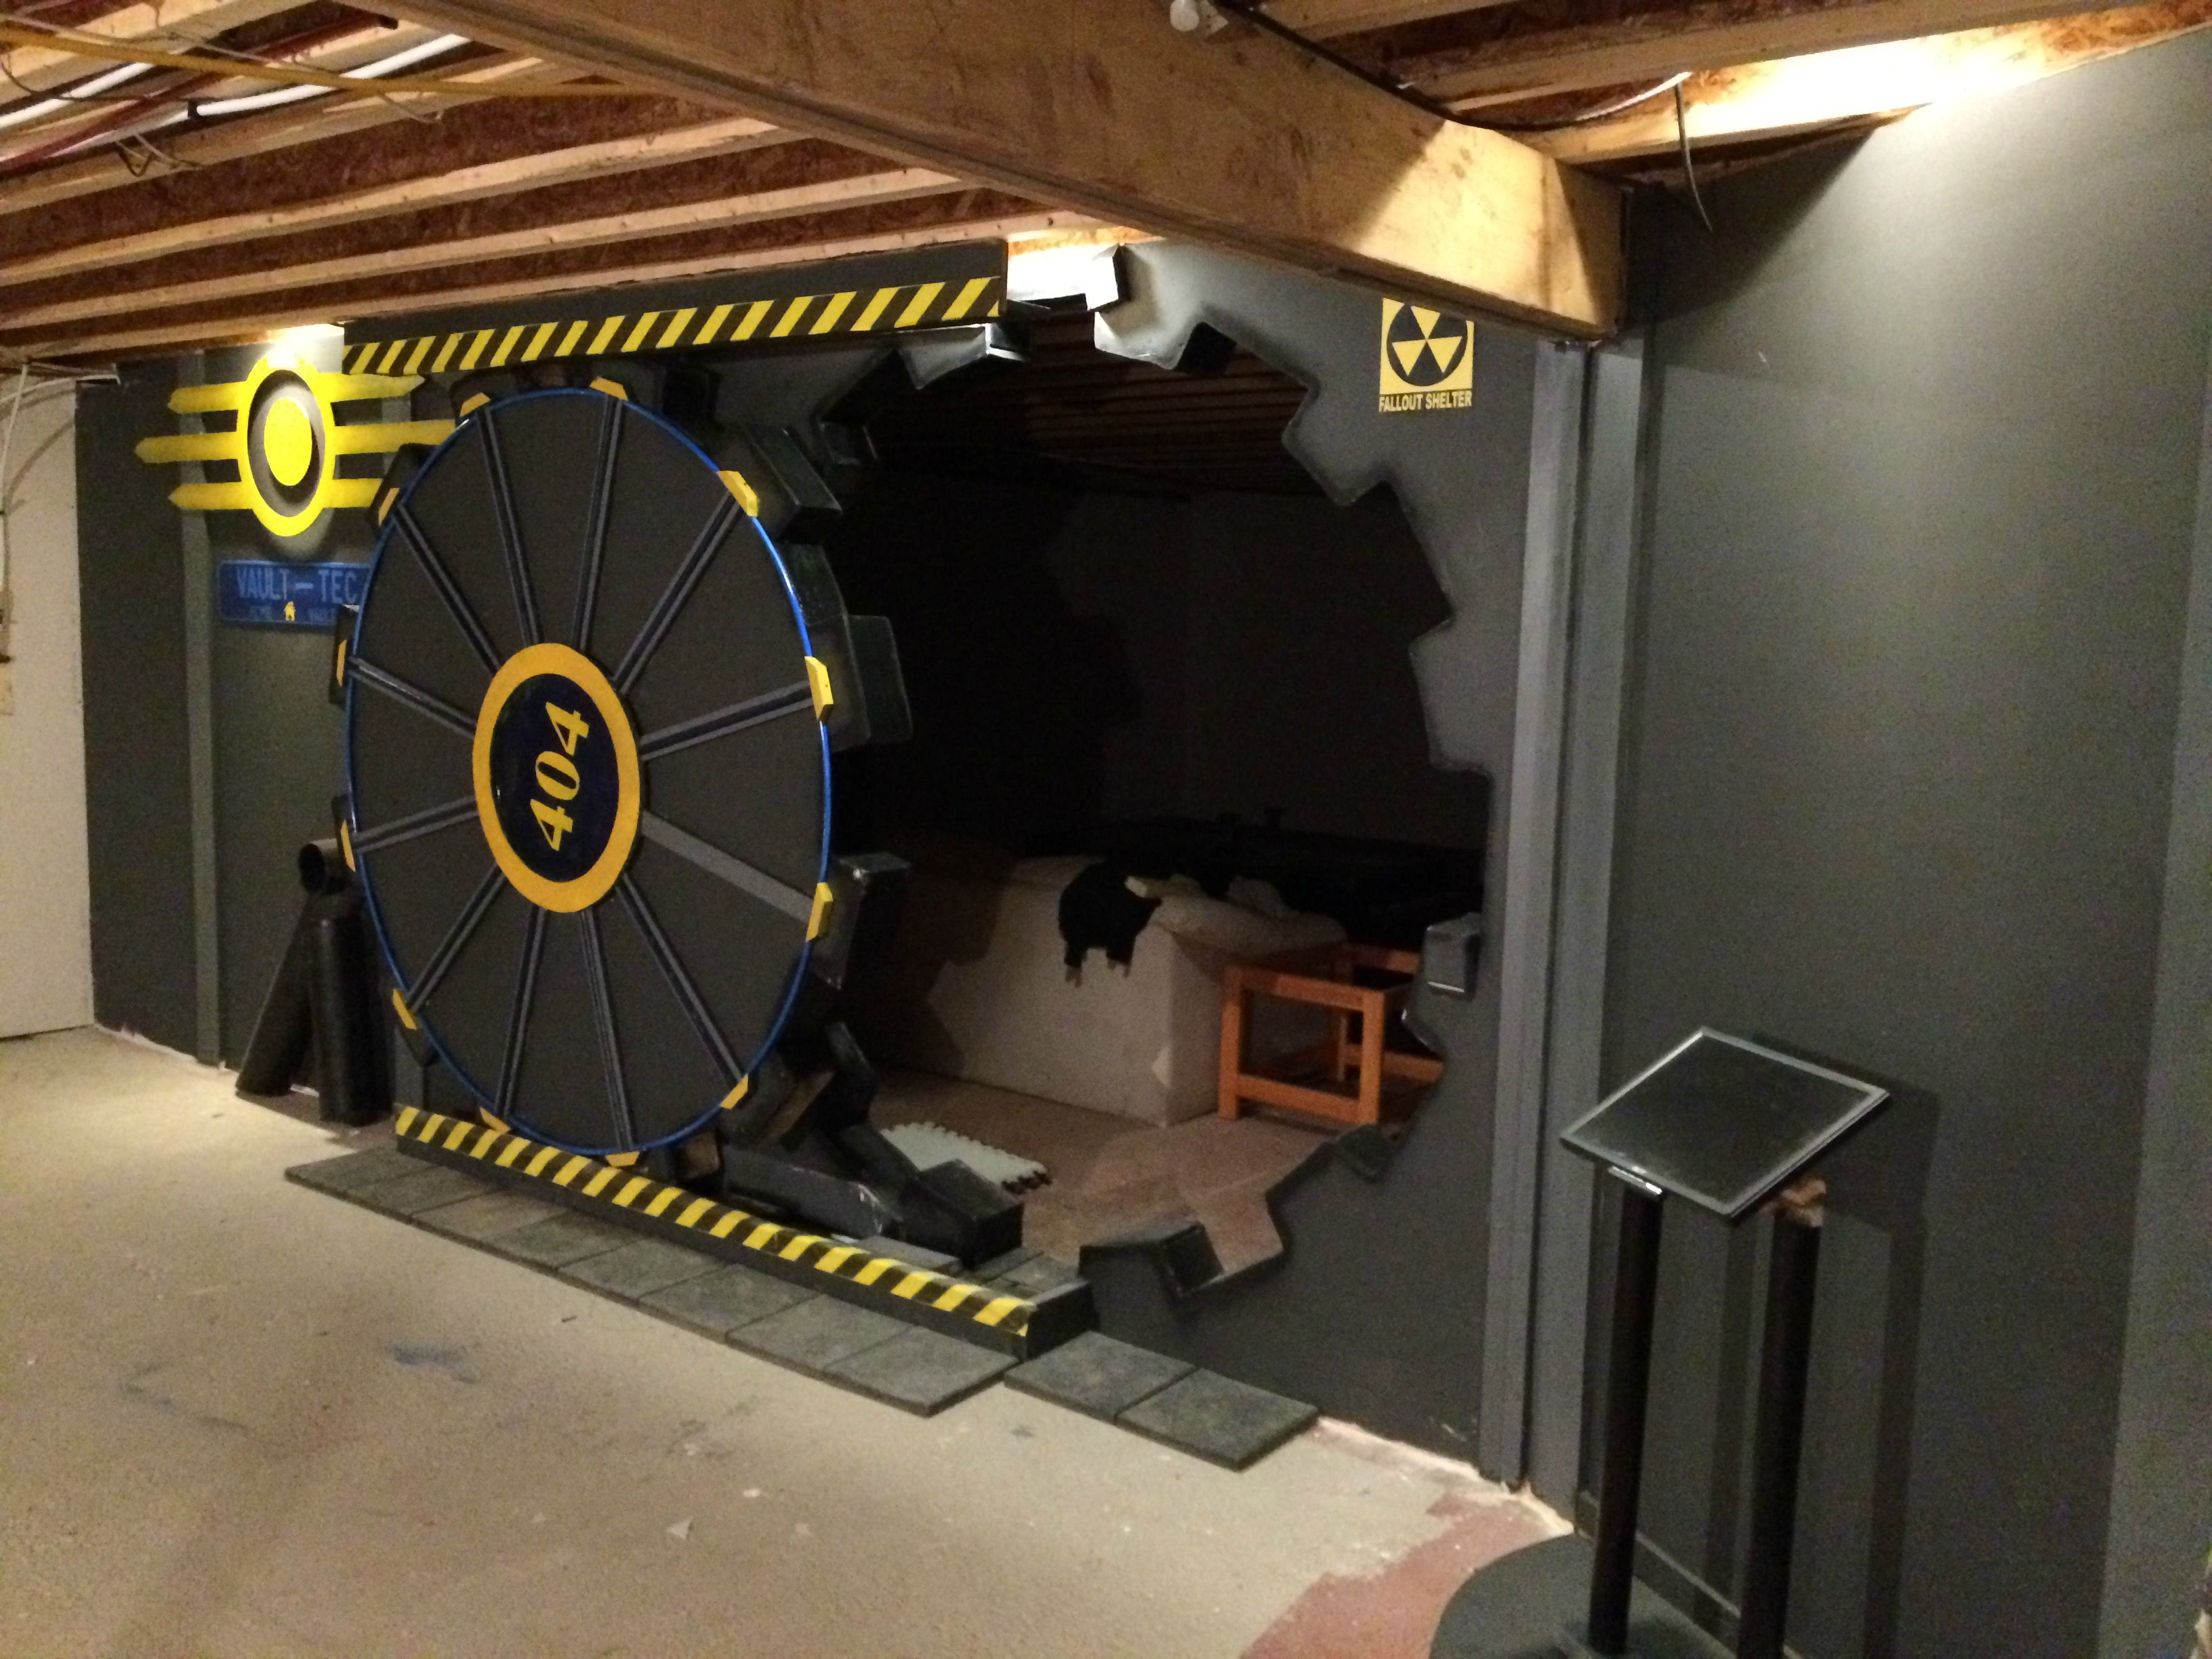 Man Cave Ideas Nerd : Guy turns his man cave into a fallout vault gallery ebaum's world